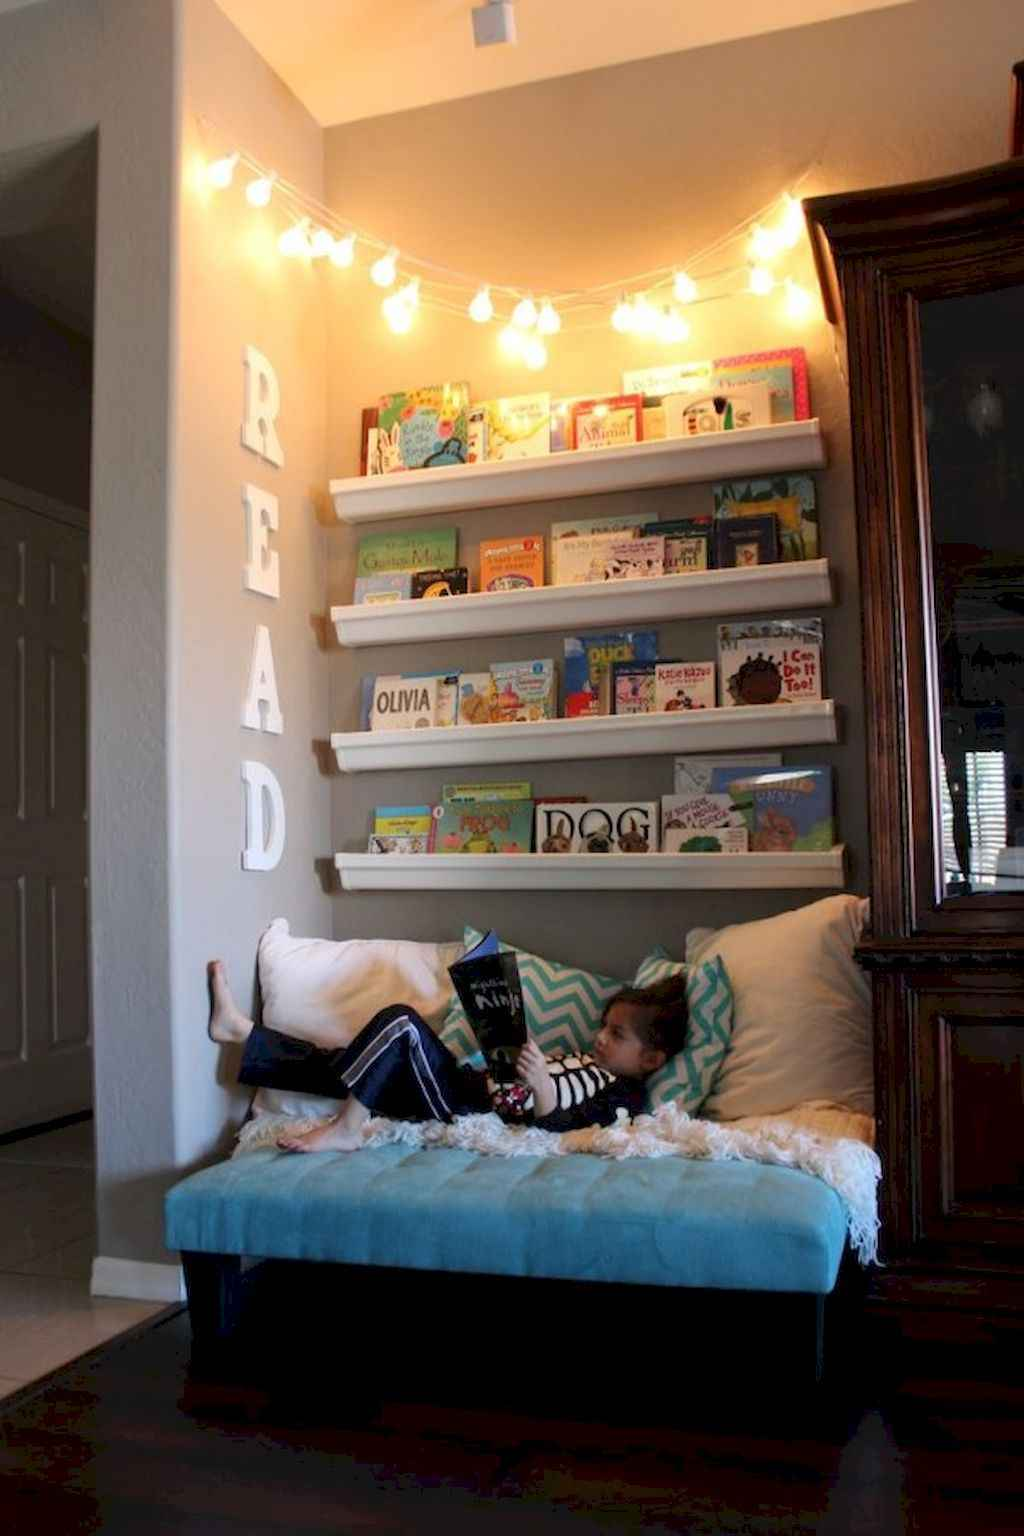 Awesome ideas bedroom for kids (42)